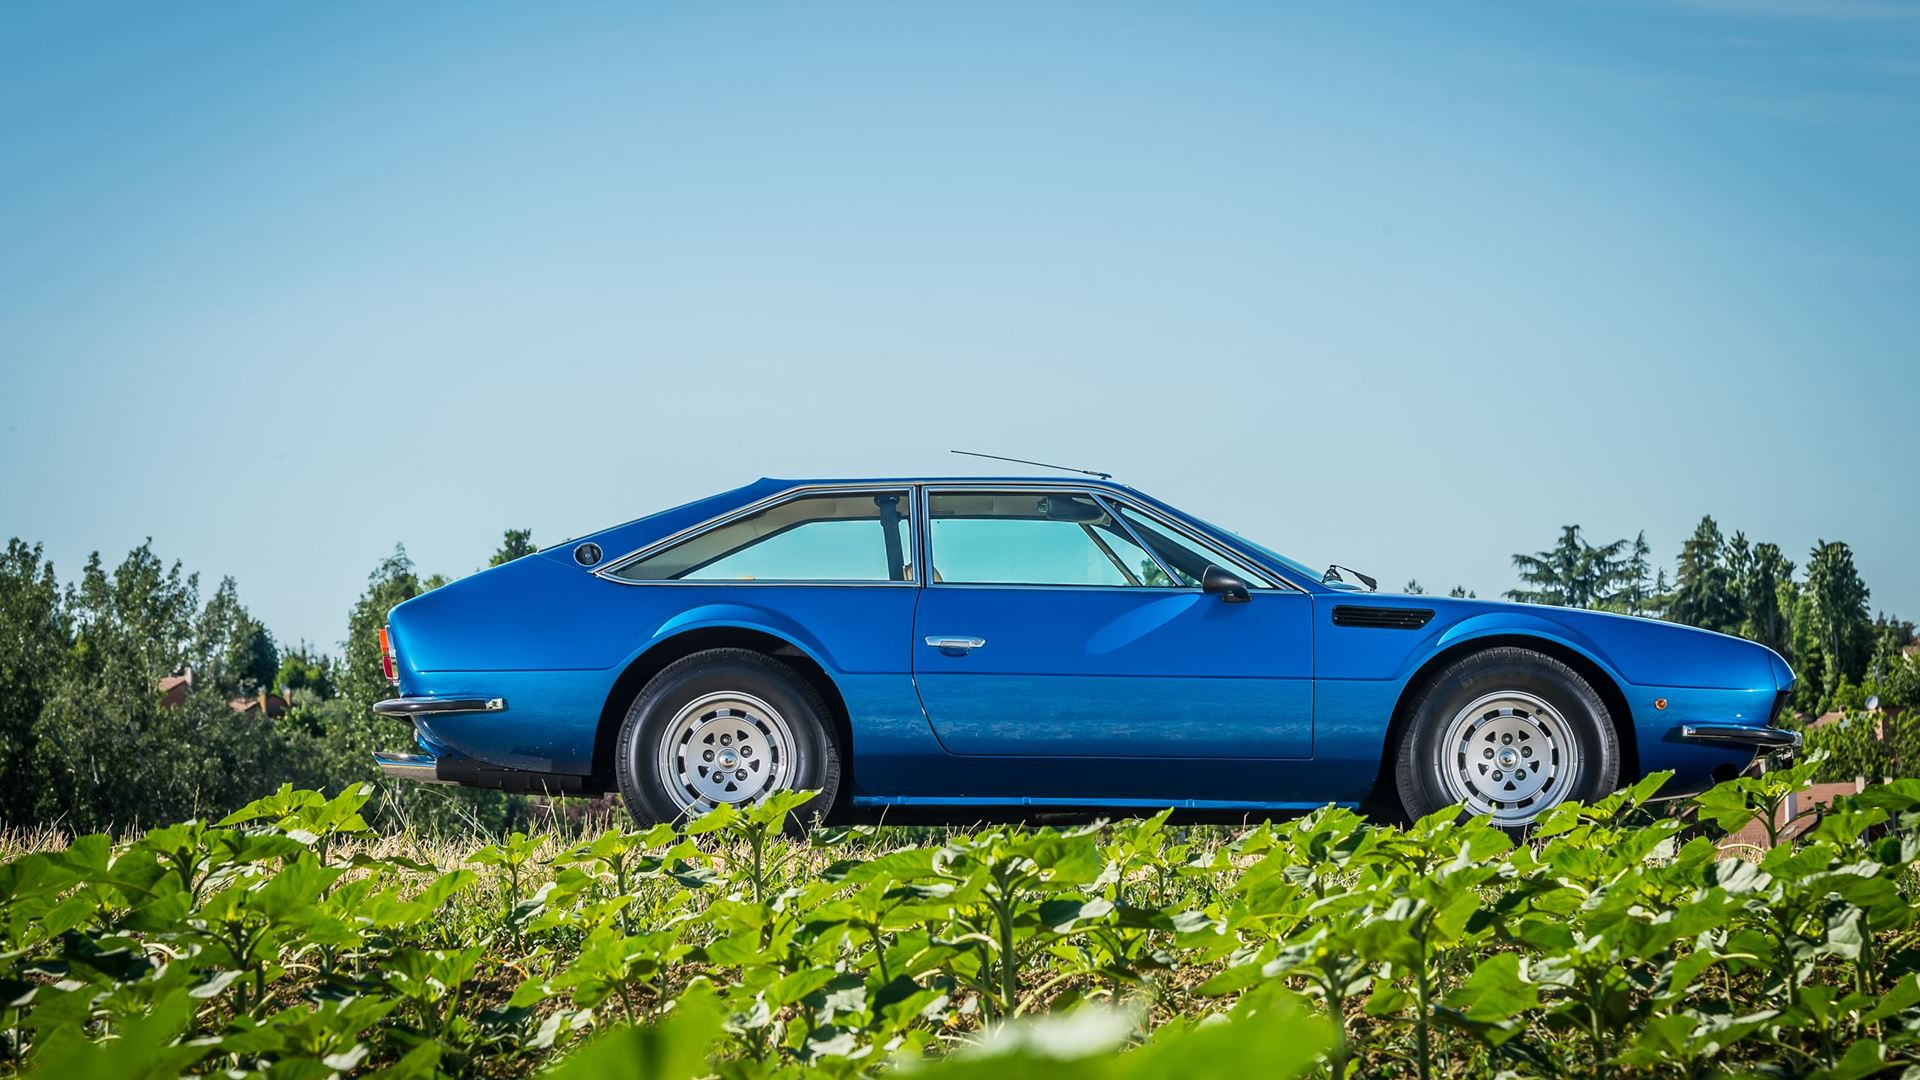 Lamborghini celebrates the 50th Anniversary of the Jarama GT - Image 8